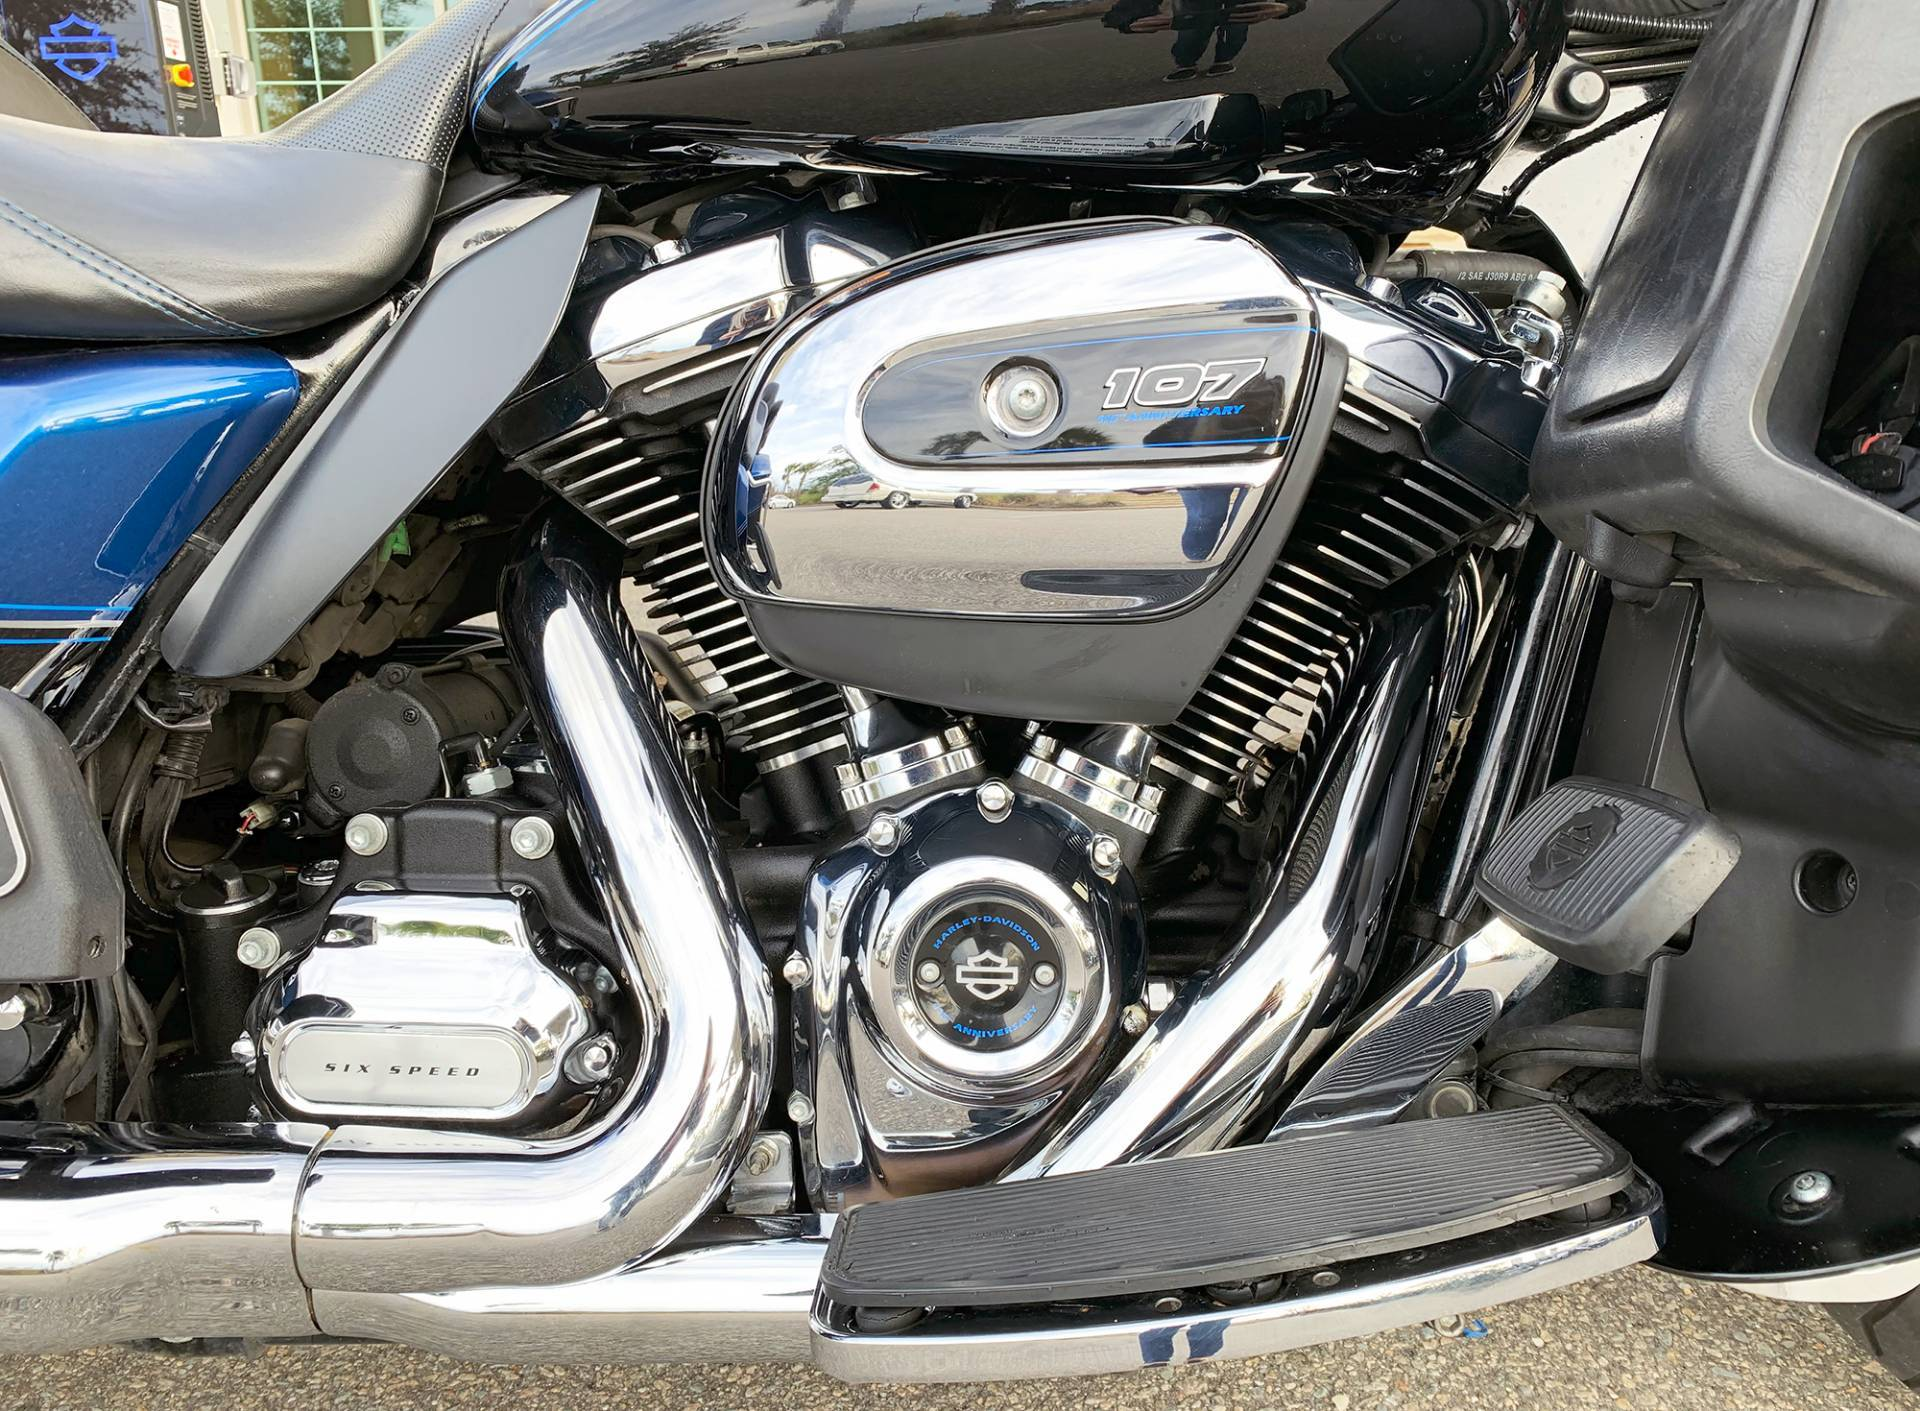 2018 Harley-Davidson Electra Glide® Ultra Limited® Anniversary in Jacksonville, North Carolina - Photo 9